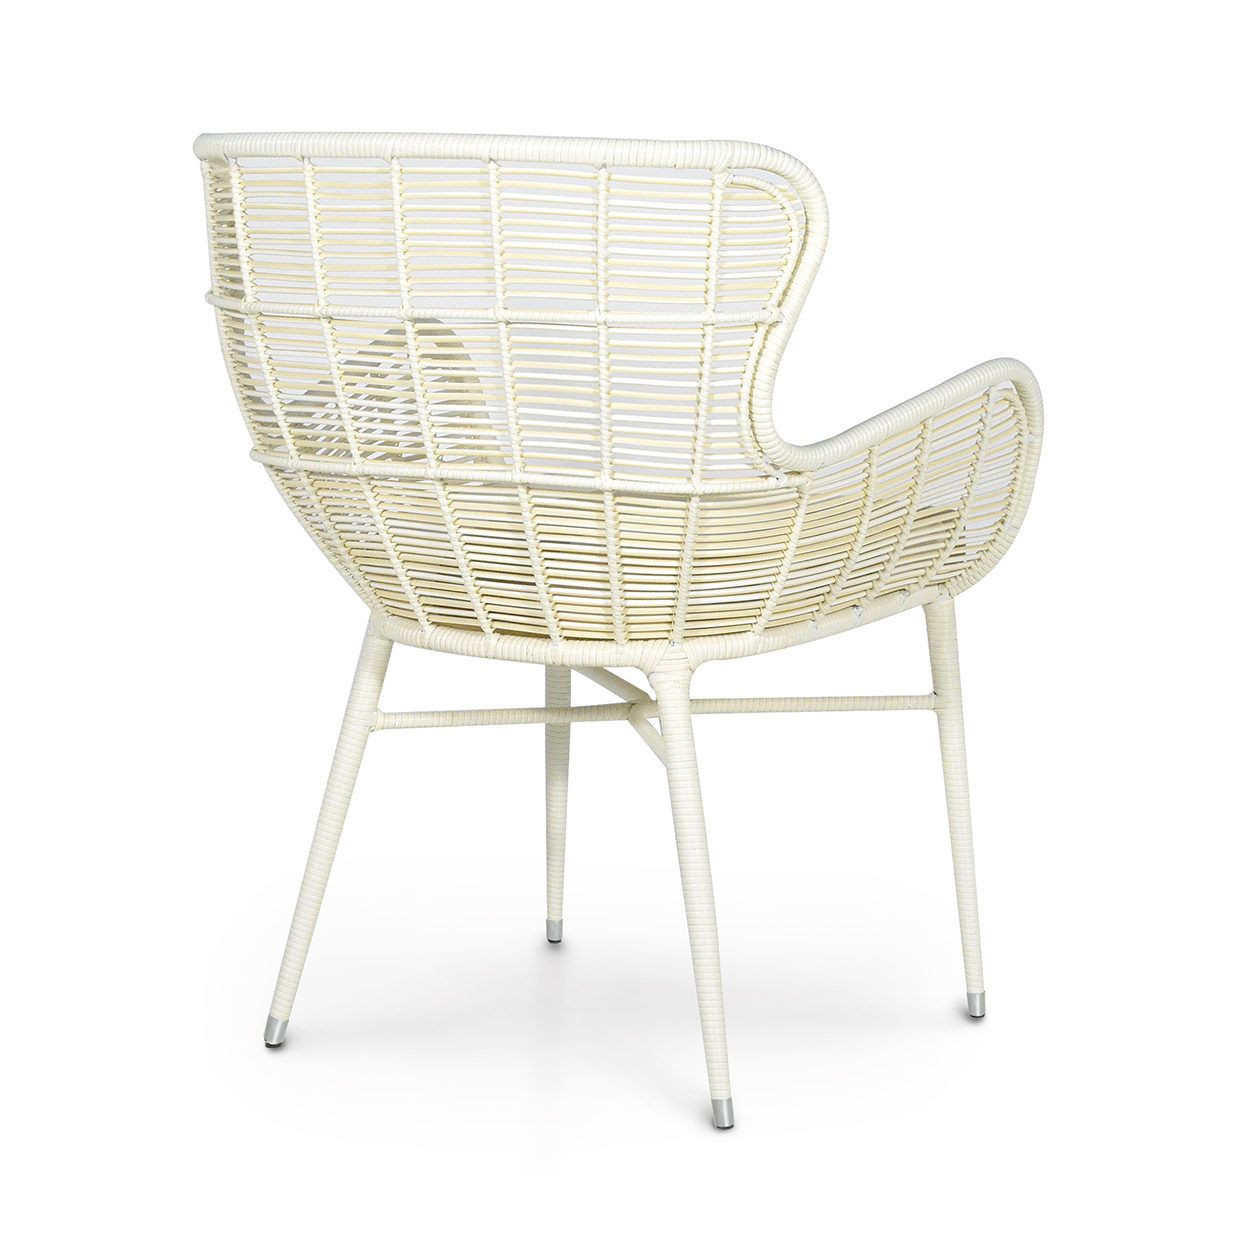 Www.palecek.com Products 793305 F 02 PALERMO OUTDOOR CHAIR CREAM